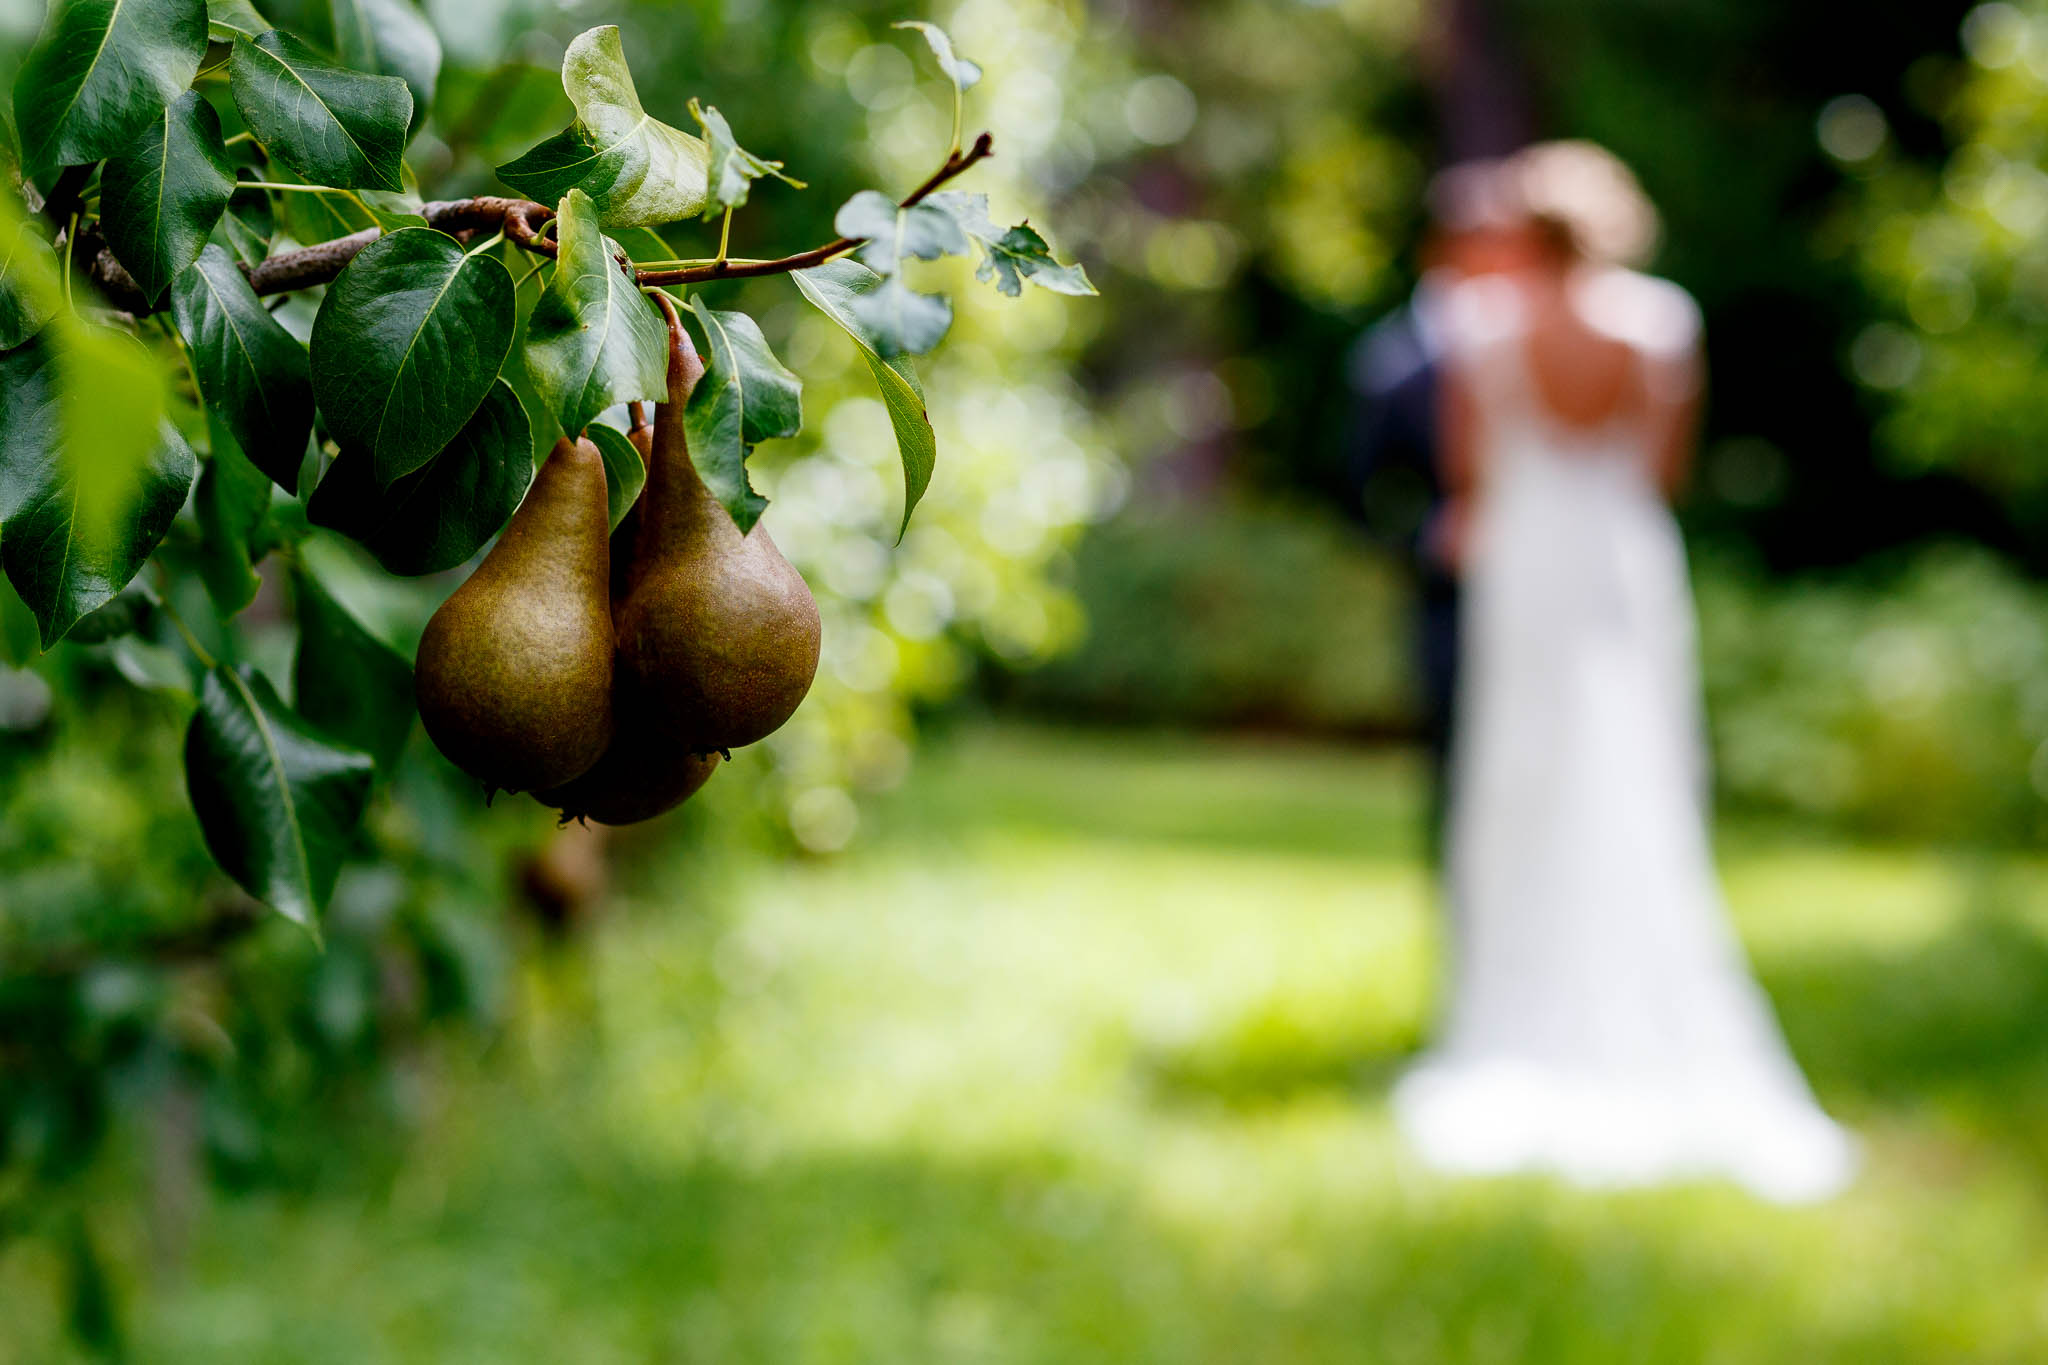 Pears at Mt Hood Organic Farms at Wedding with bride and groom